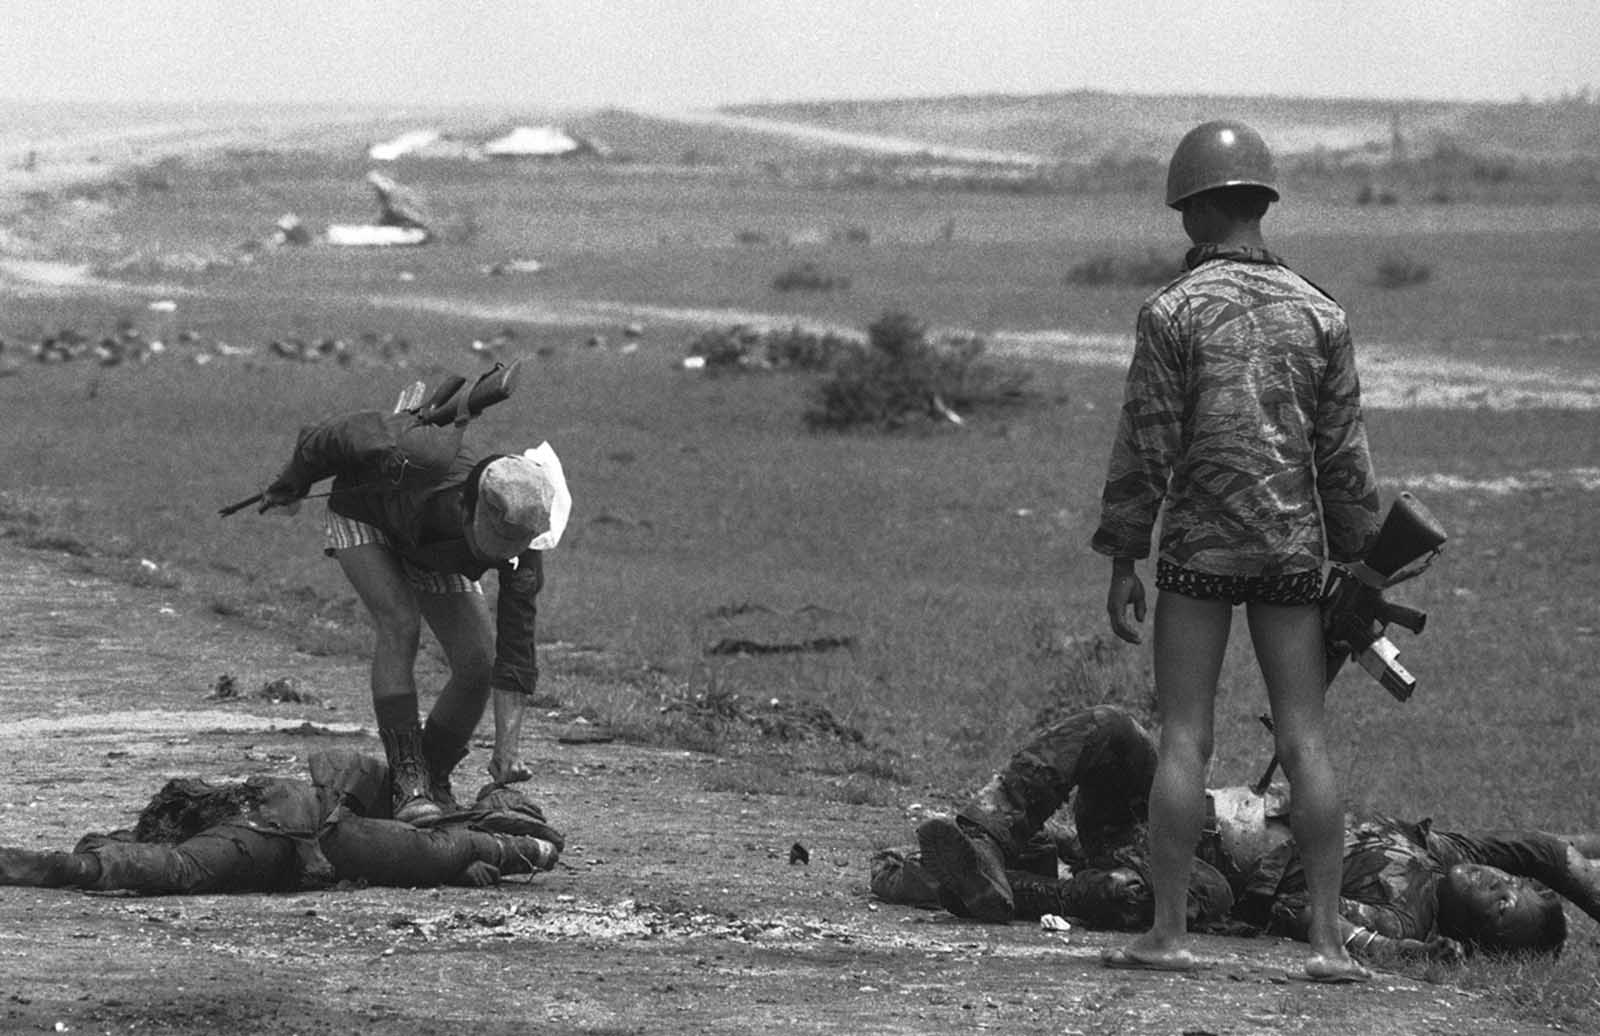 South Vietnamese Marines check the bodies of dead soldiers for cigarettes near My Chanh, new government defense line 20 miles north of Hue, on May 5, 1972. The soldiers were killed during fighting when Quang Tri City was abandoned.